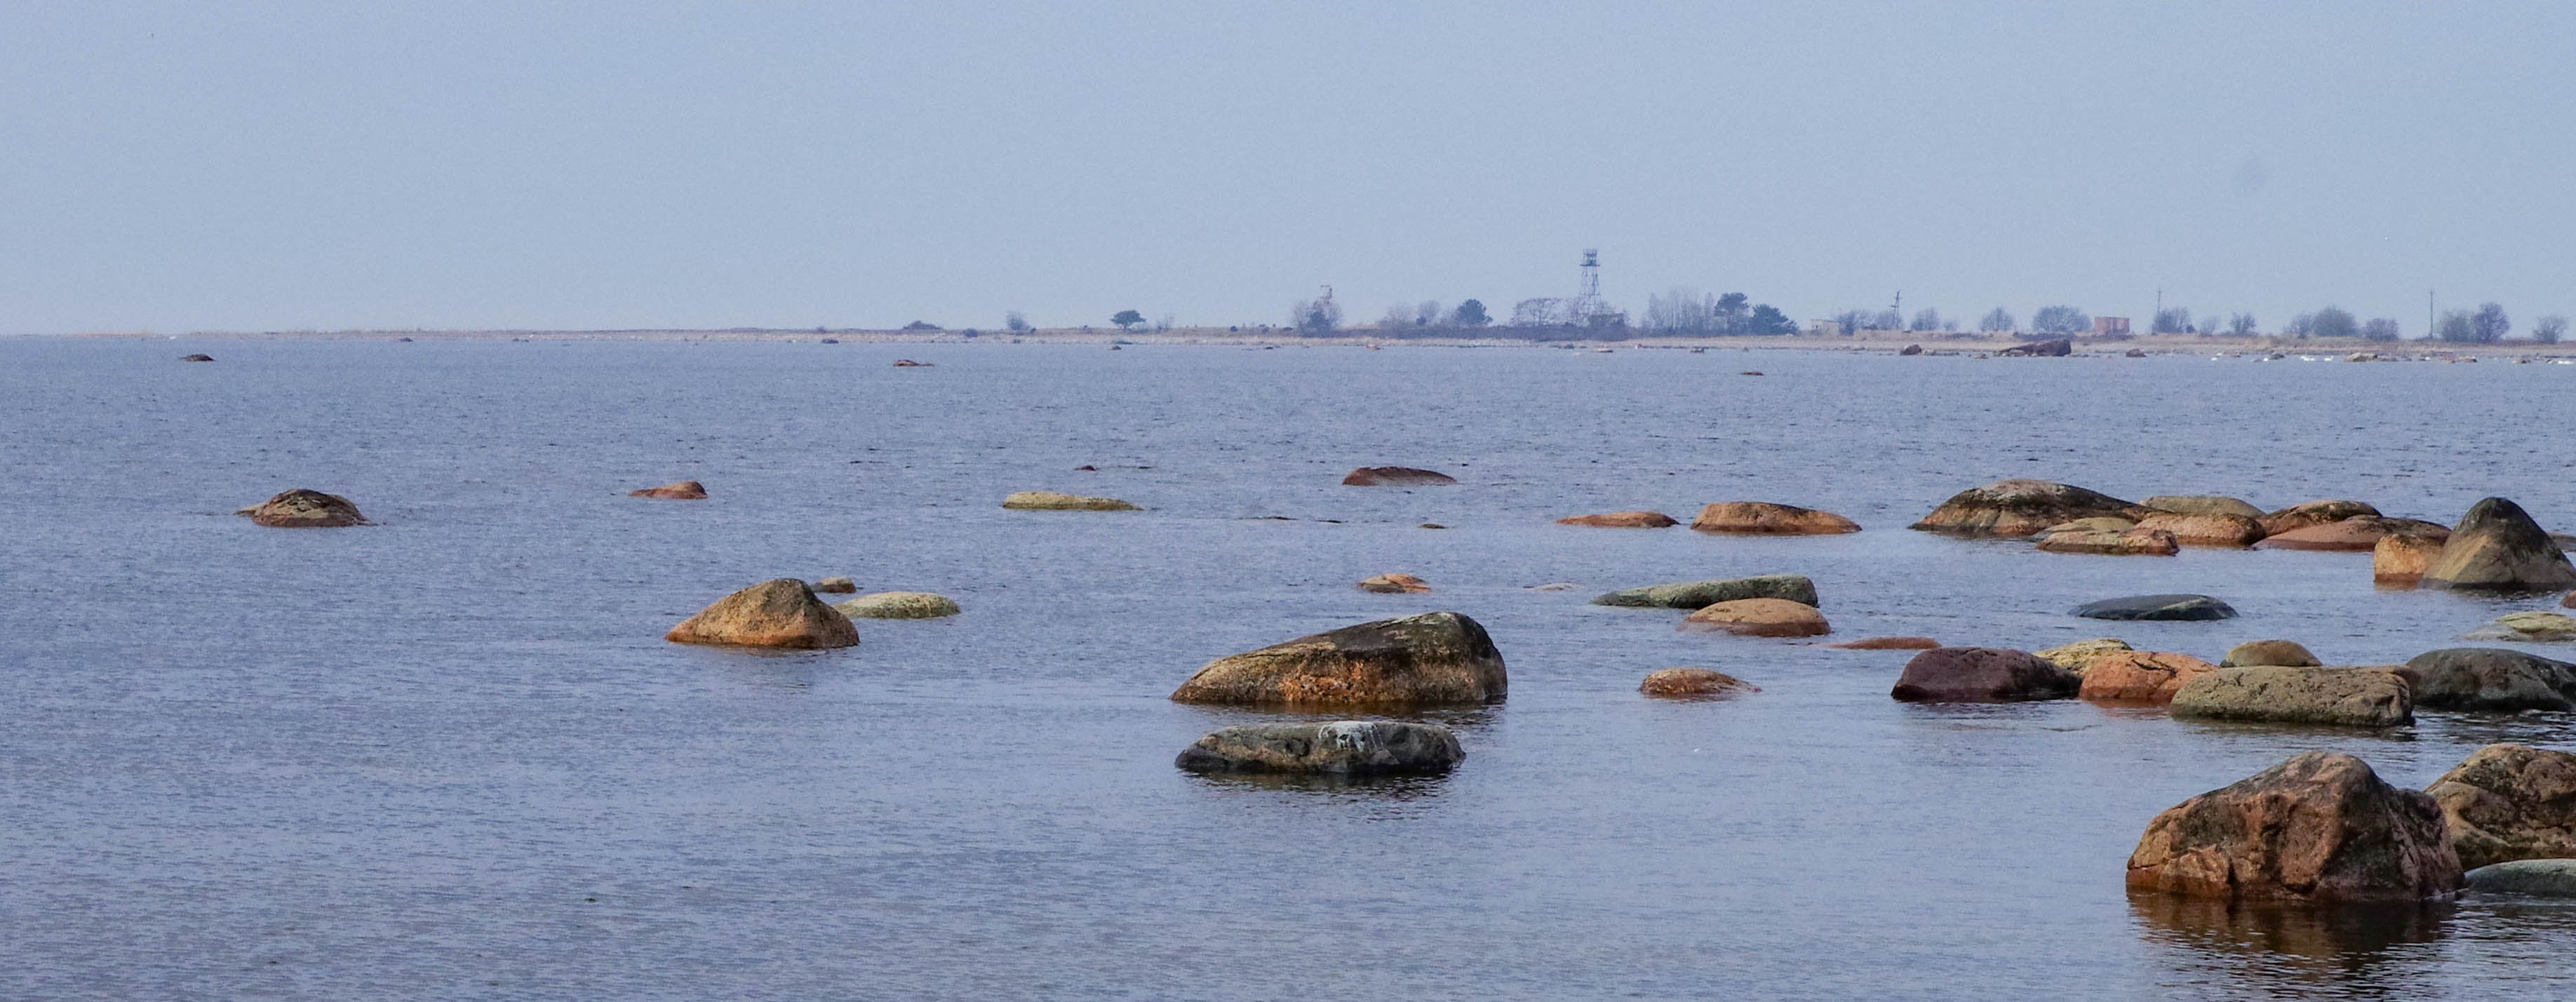 Brown Rocks on Body of Water